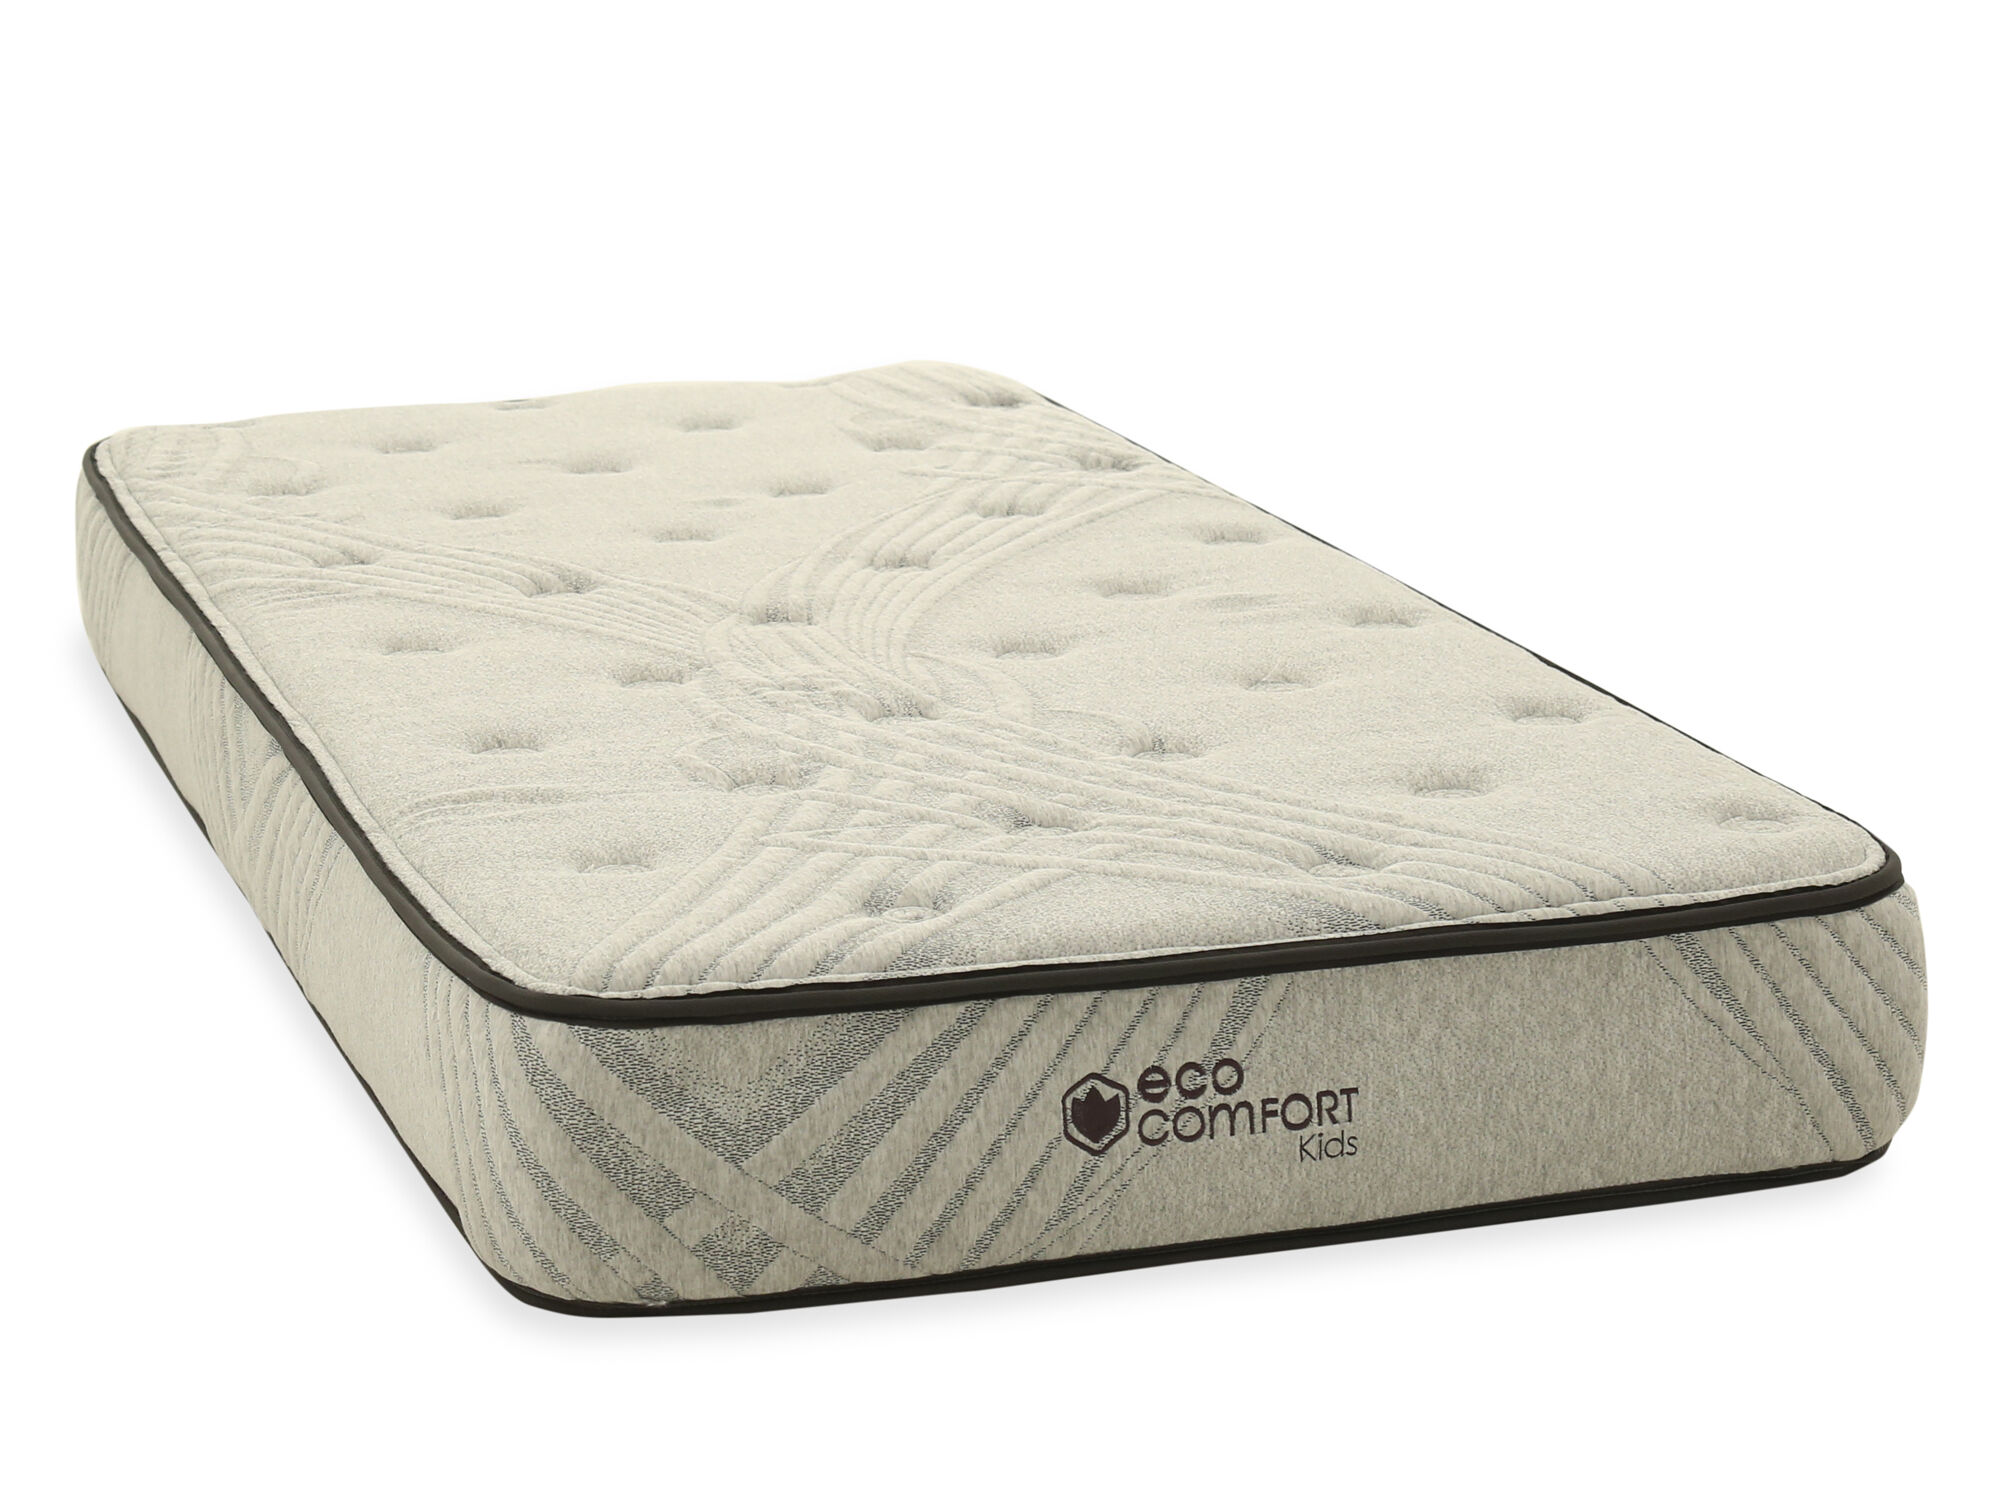 ecocomfort Kids Plush Mattress  Mathis Brothers Furniture